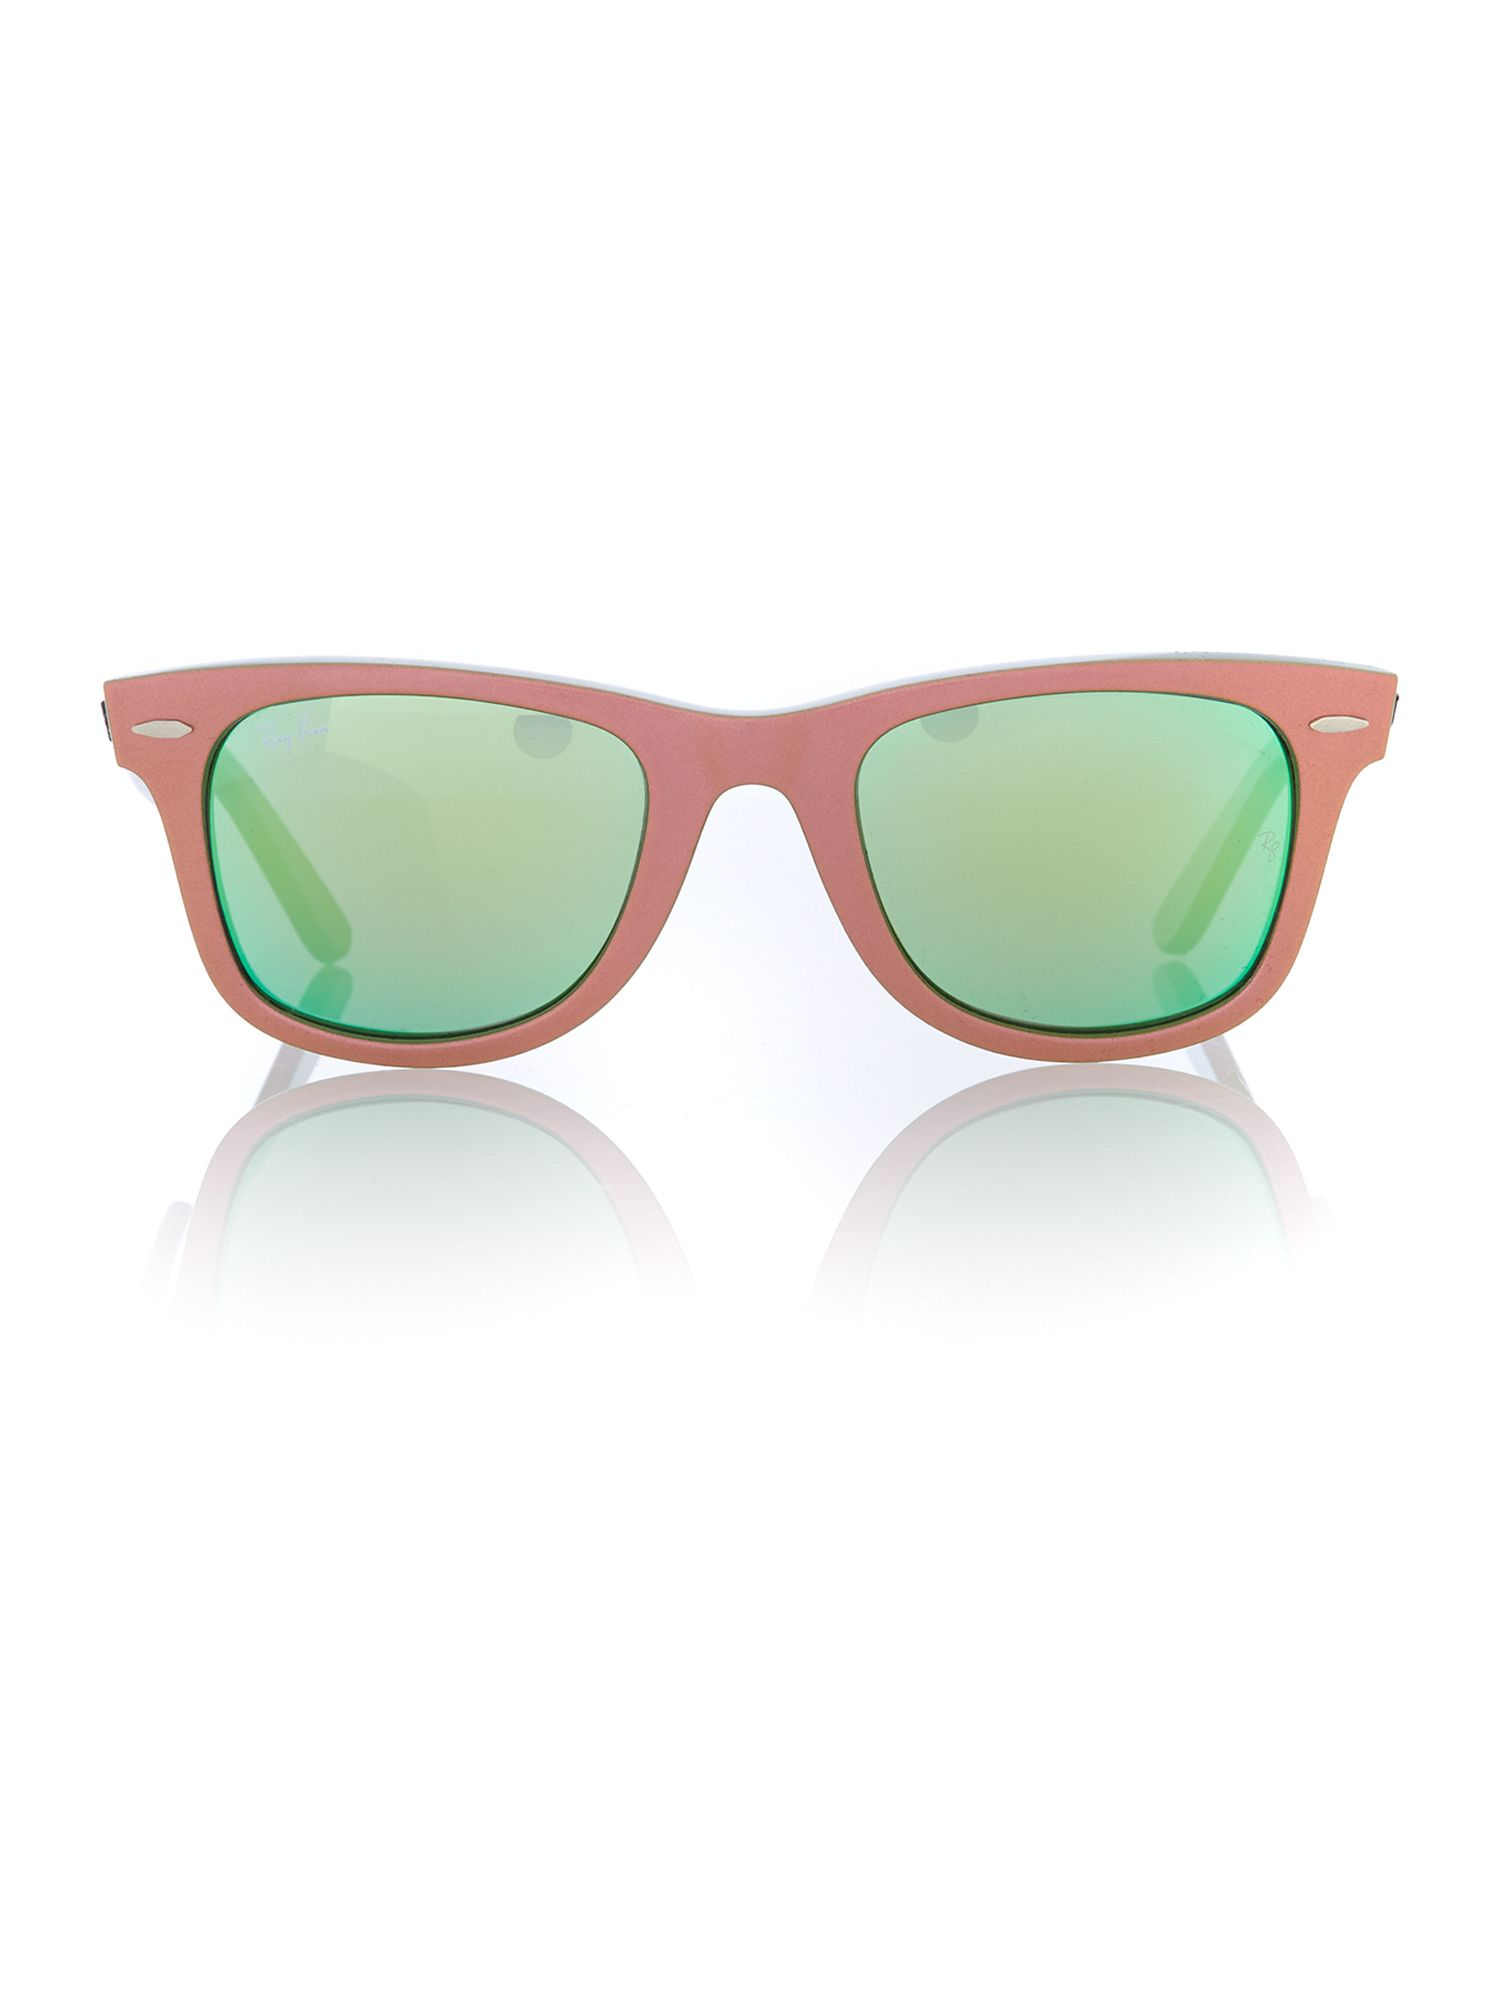 Unisex grey mirror green squared sunglasses